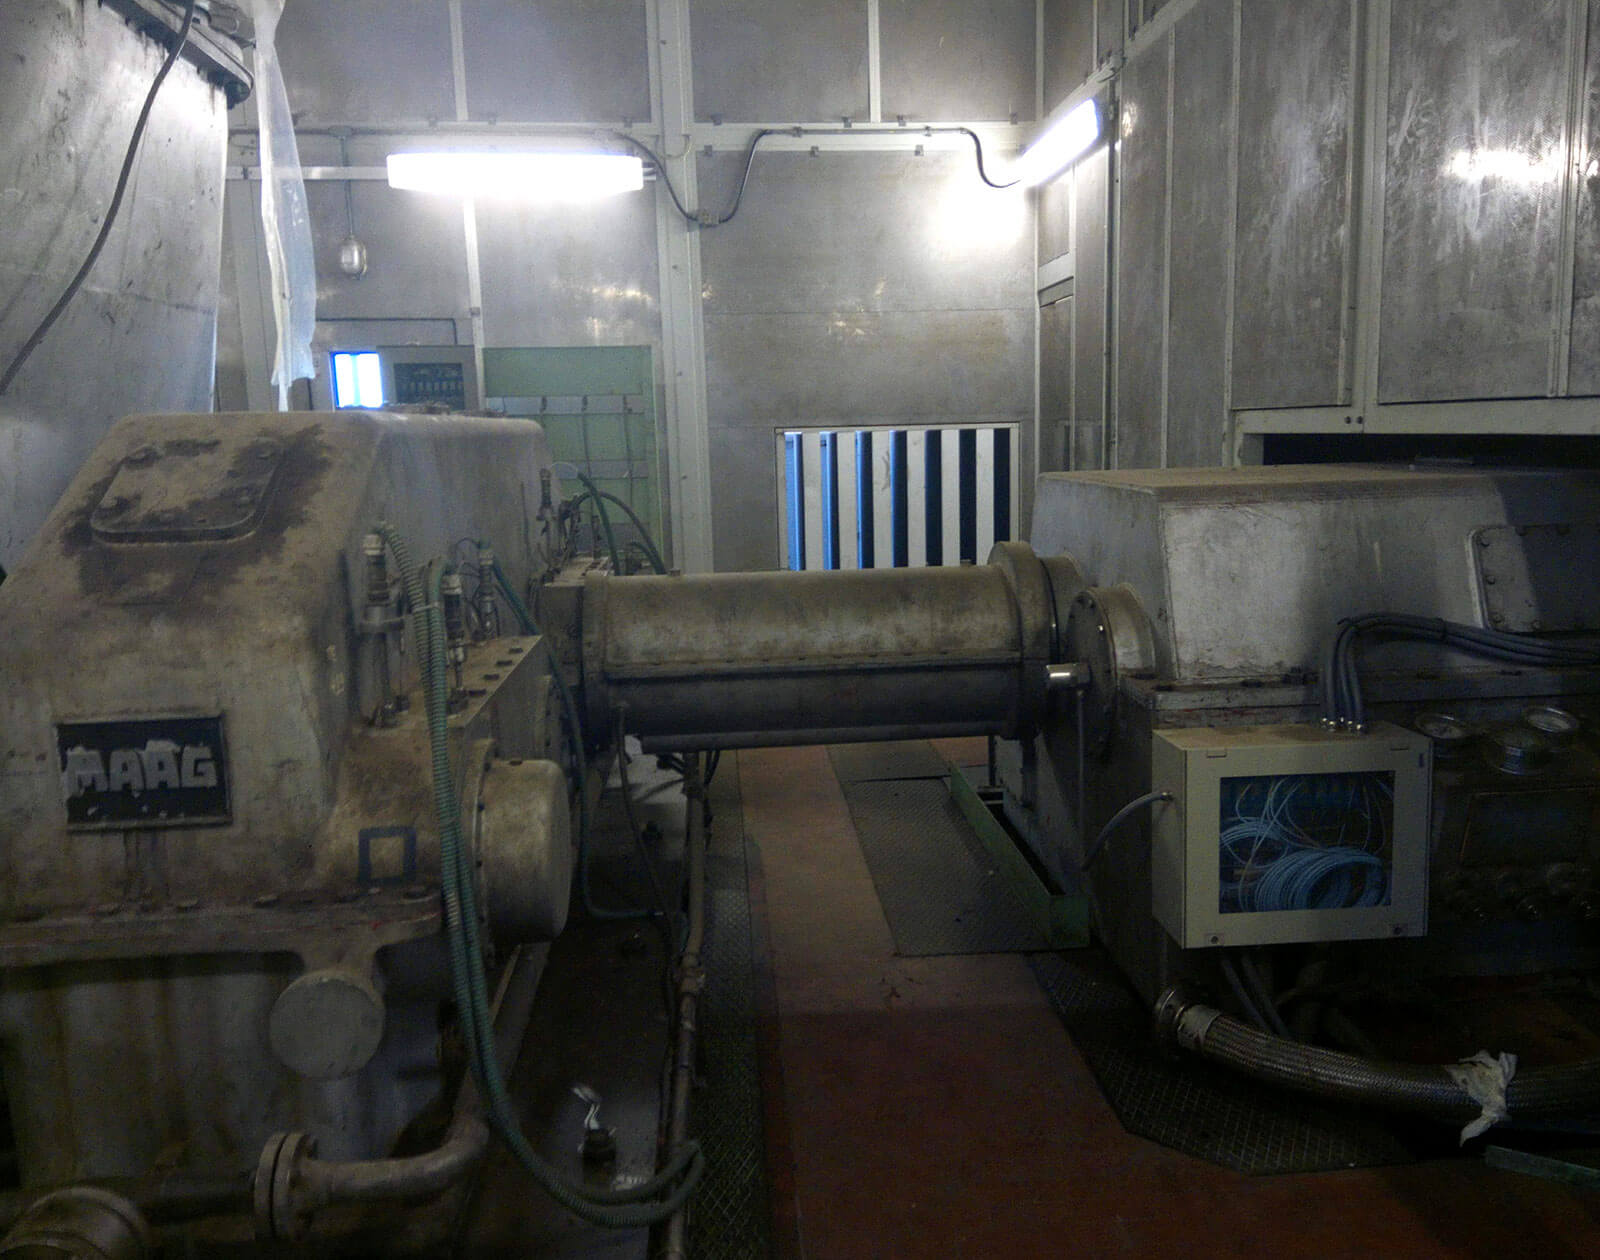 Geothermal power plant main turbine